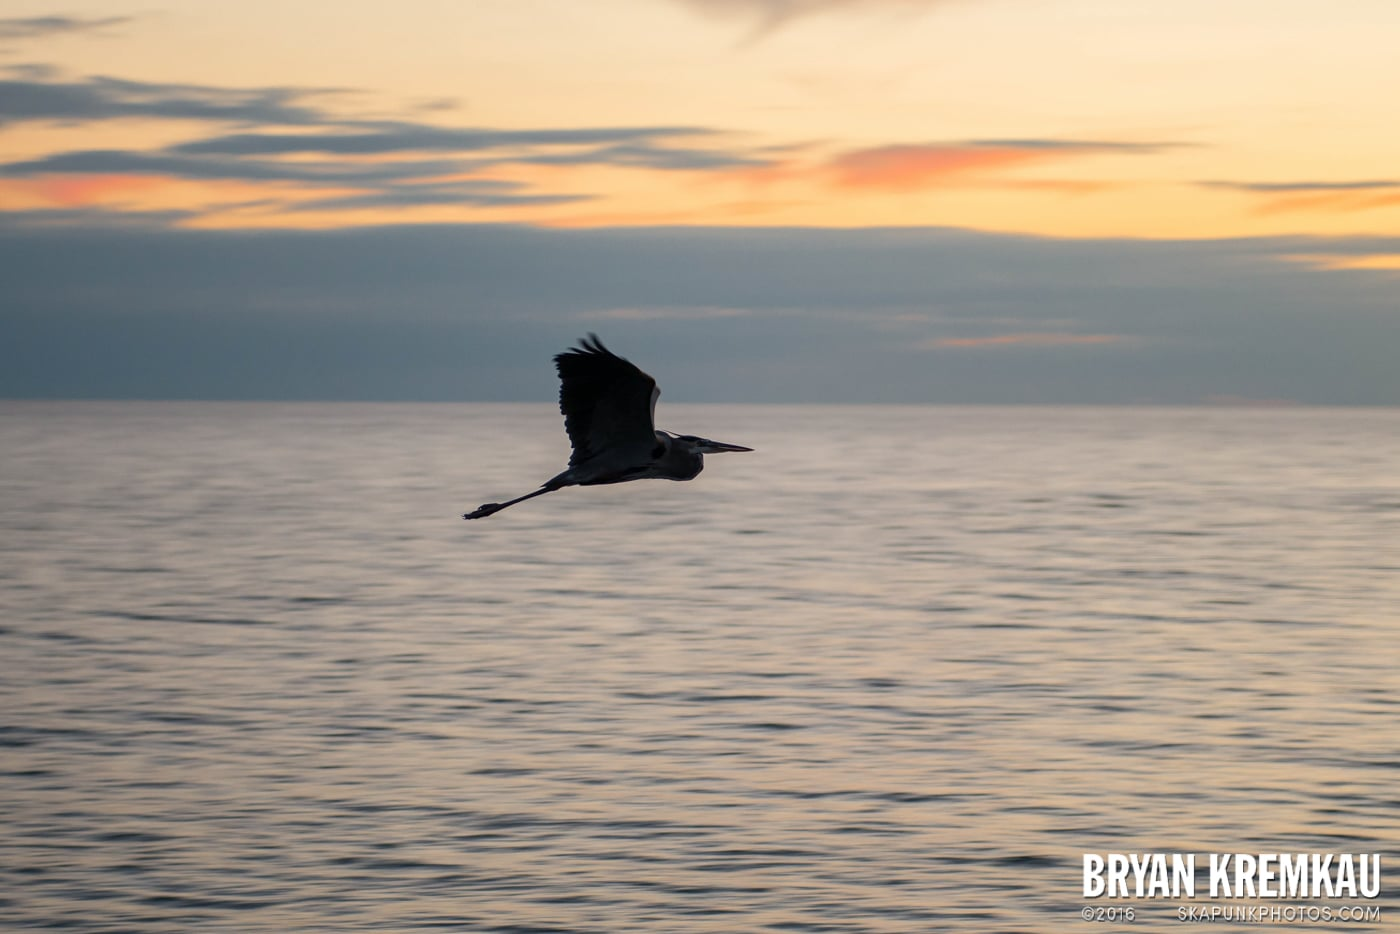 Sunsets, Astrophotography & Birds @ Venice, Florida - 10.25.14 - 11.5.14 (125)